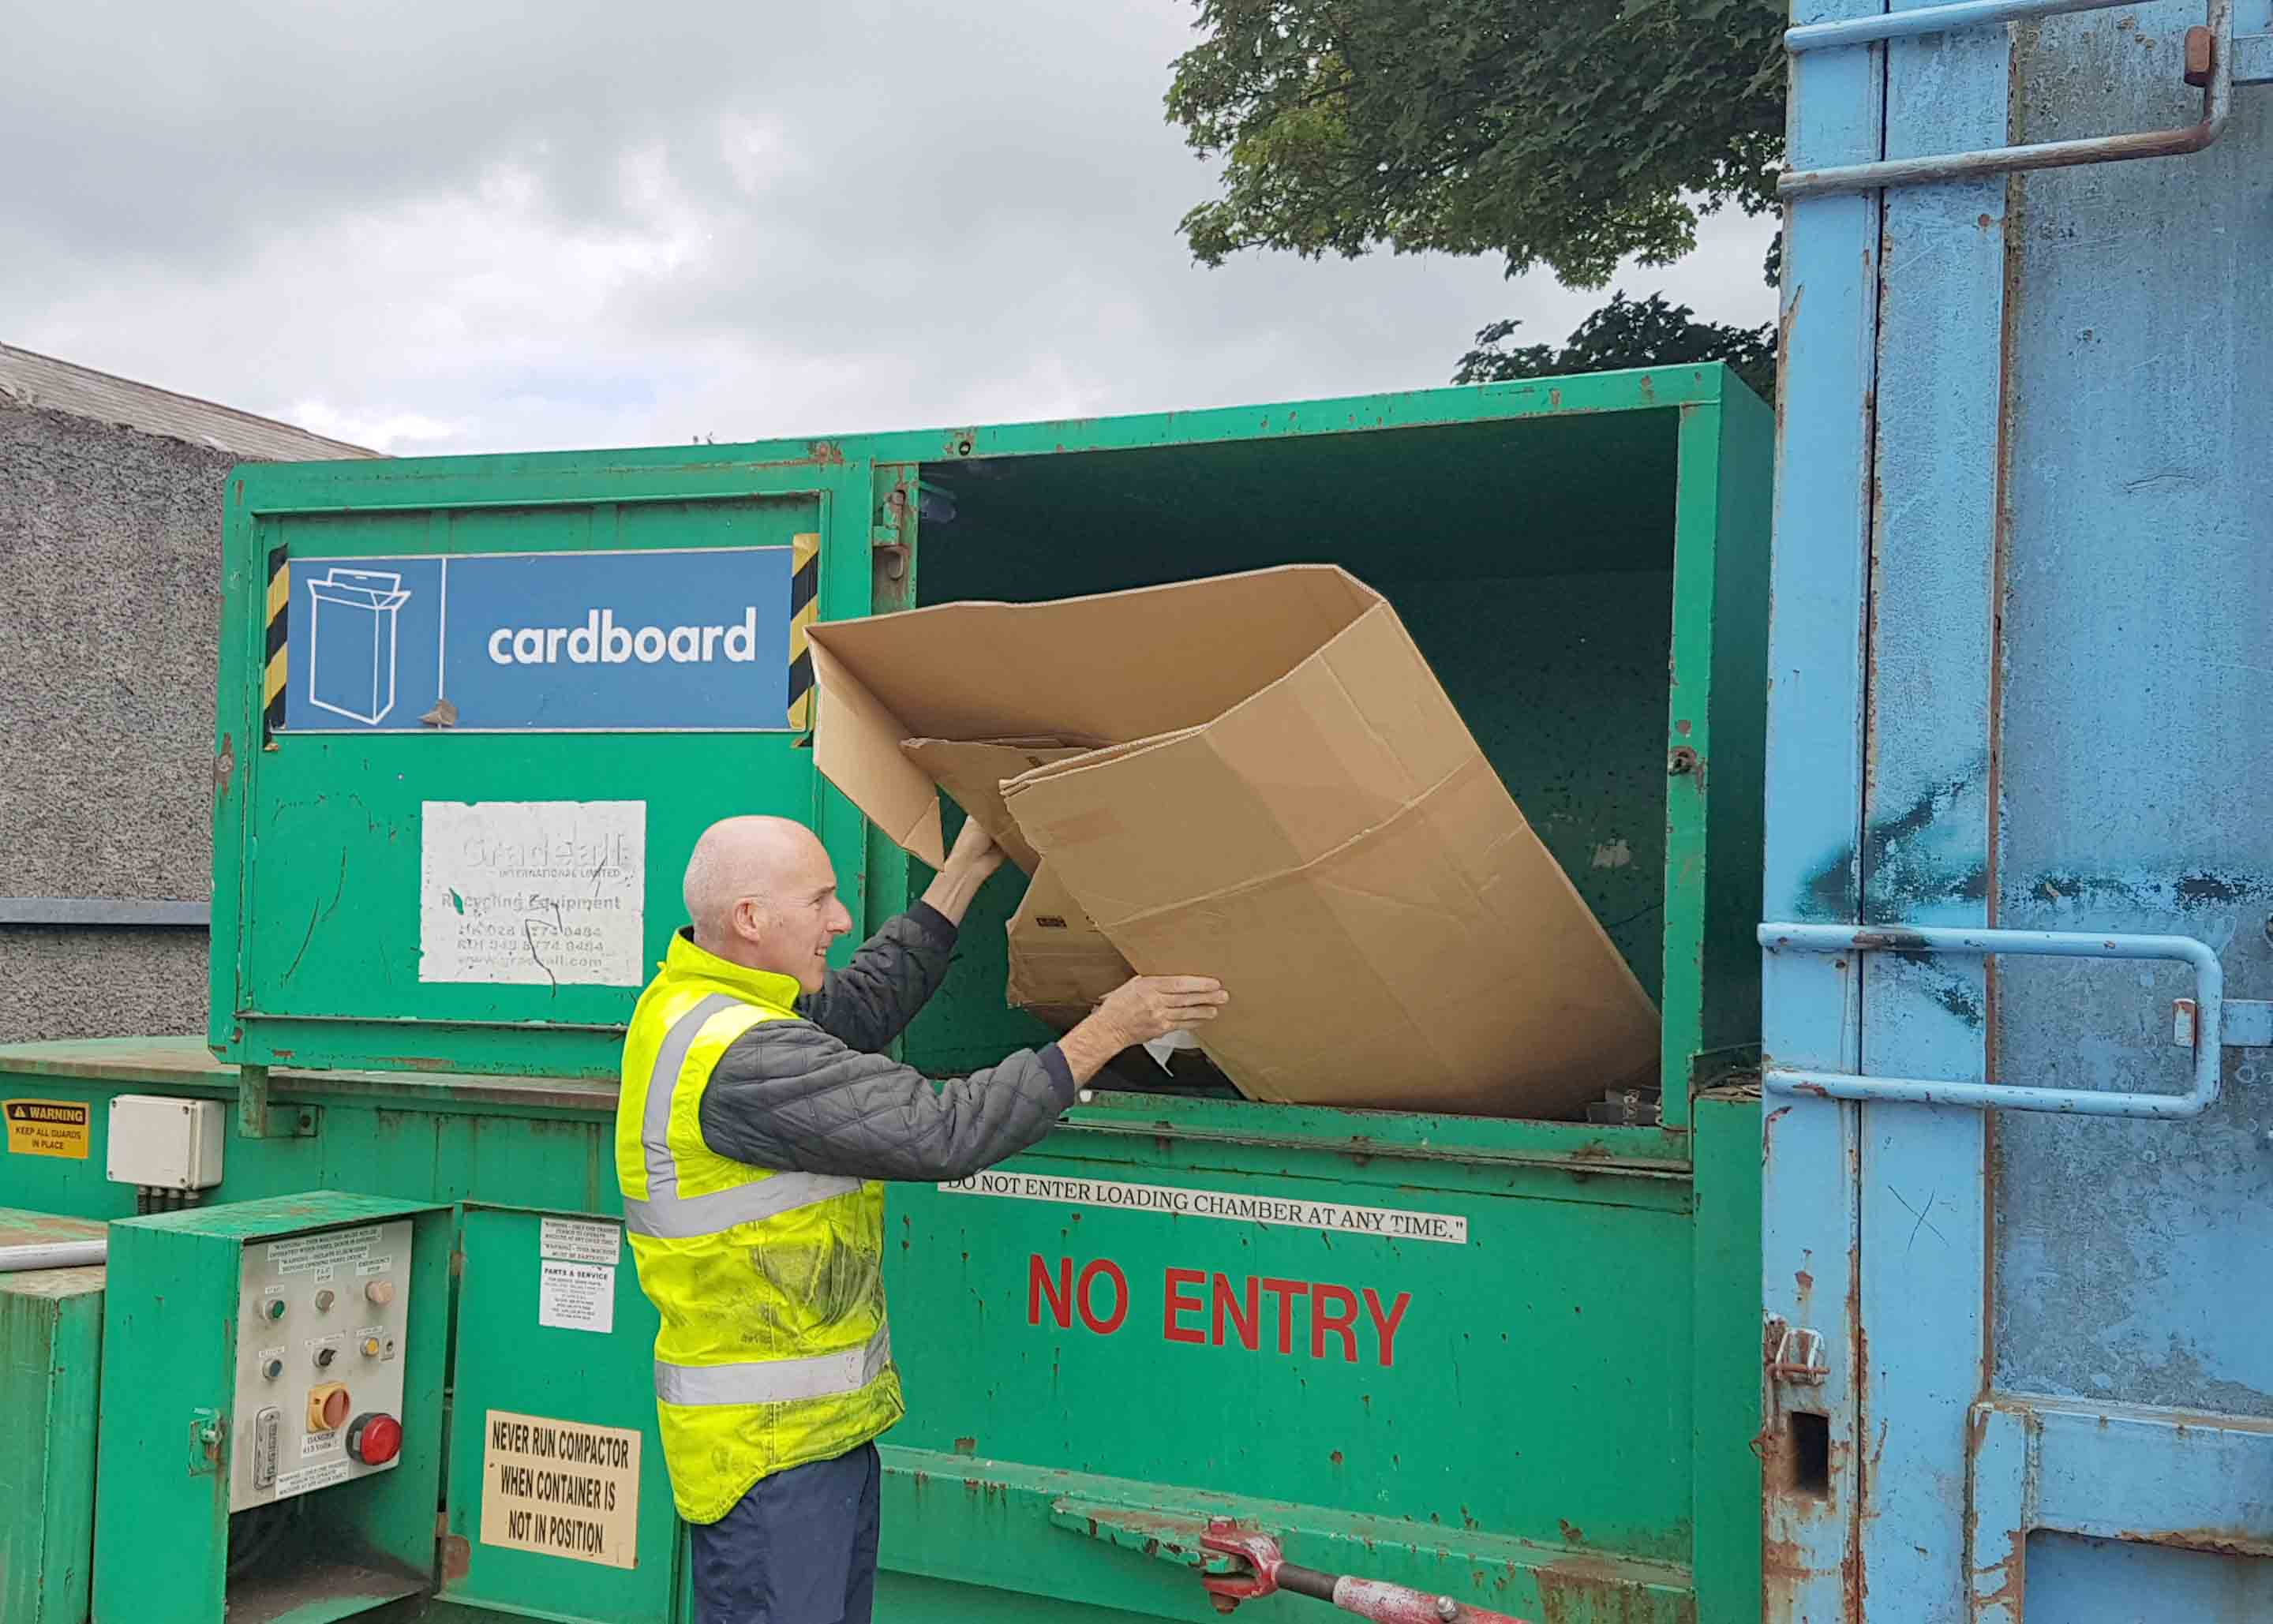 Photograph of a staff member recycling some cardboard